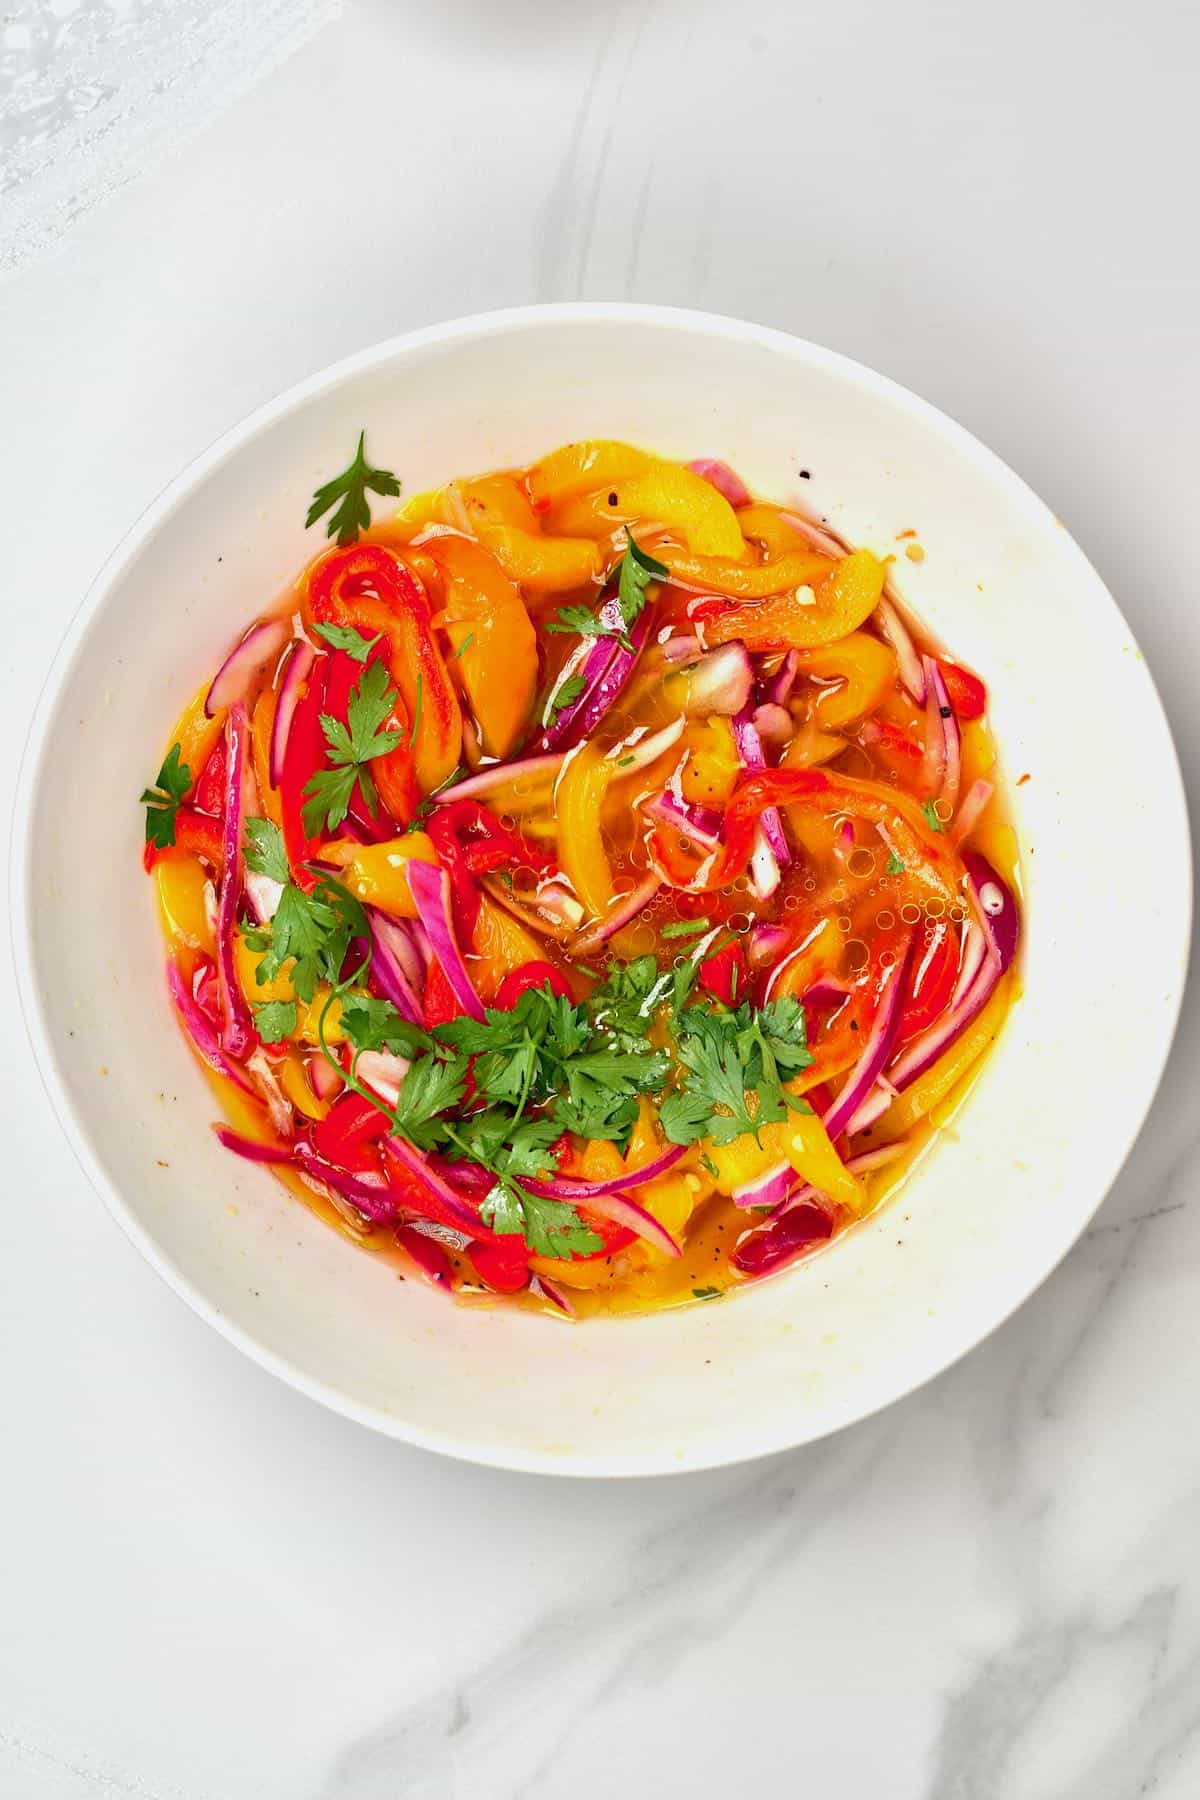 Roasted red pepper salad in a bowl